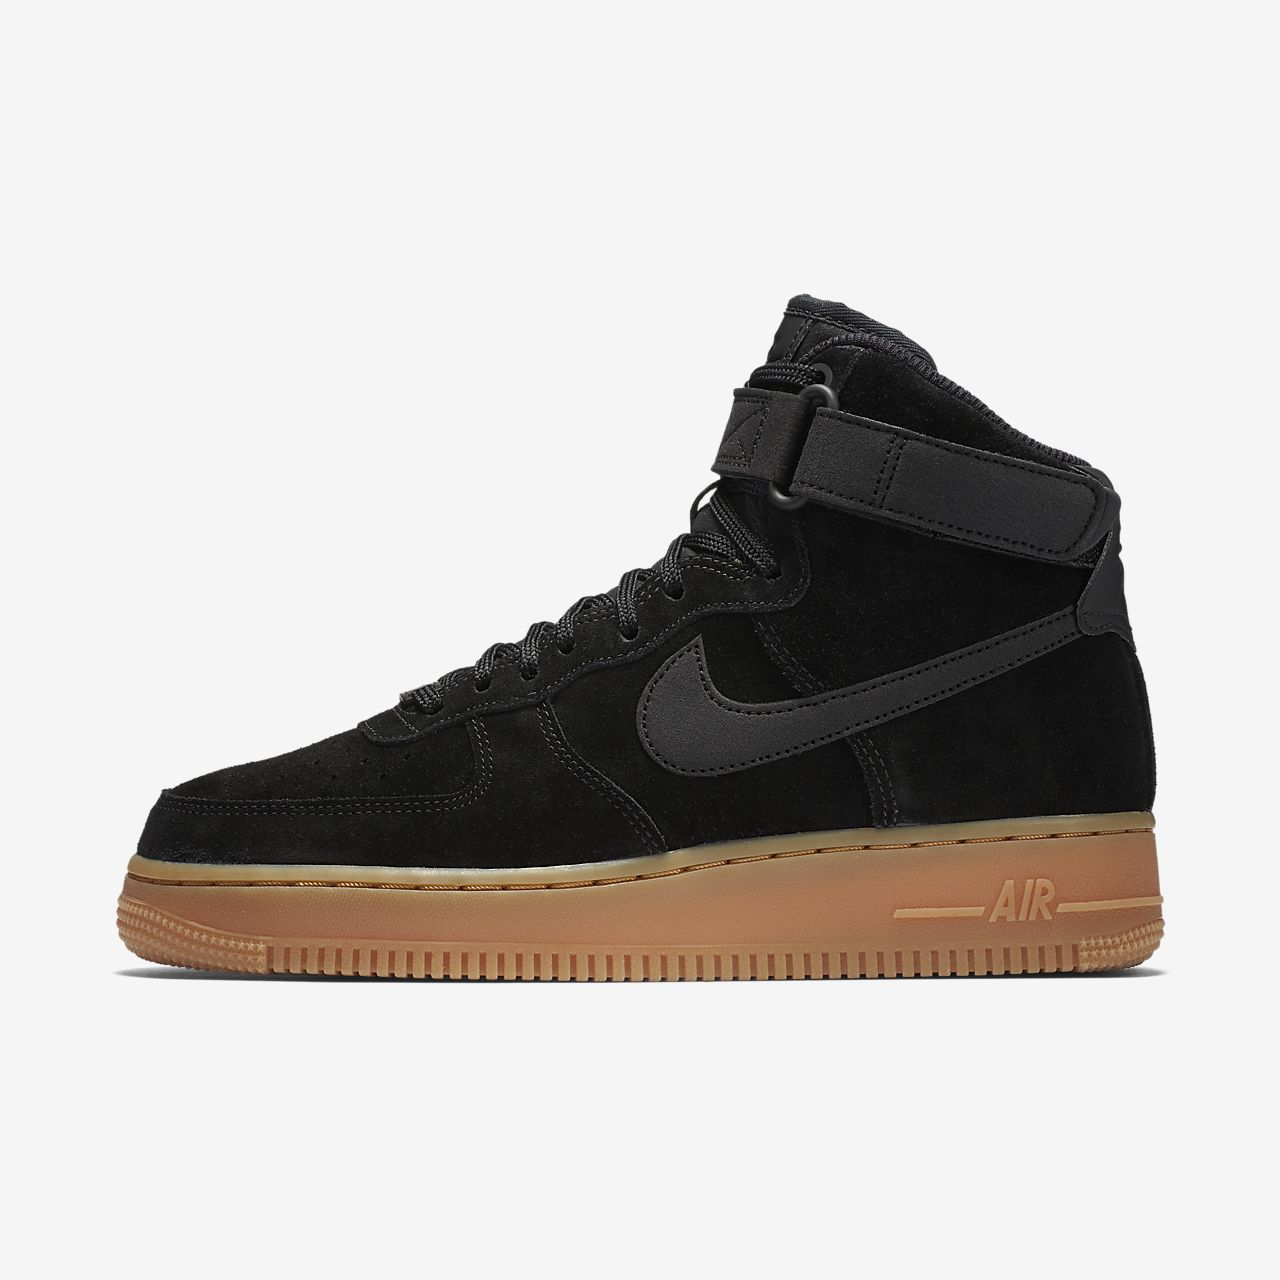 nike air force 1 07 black leather nz